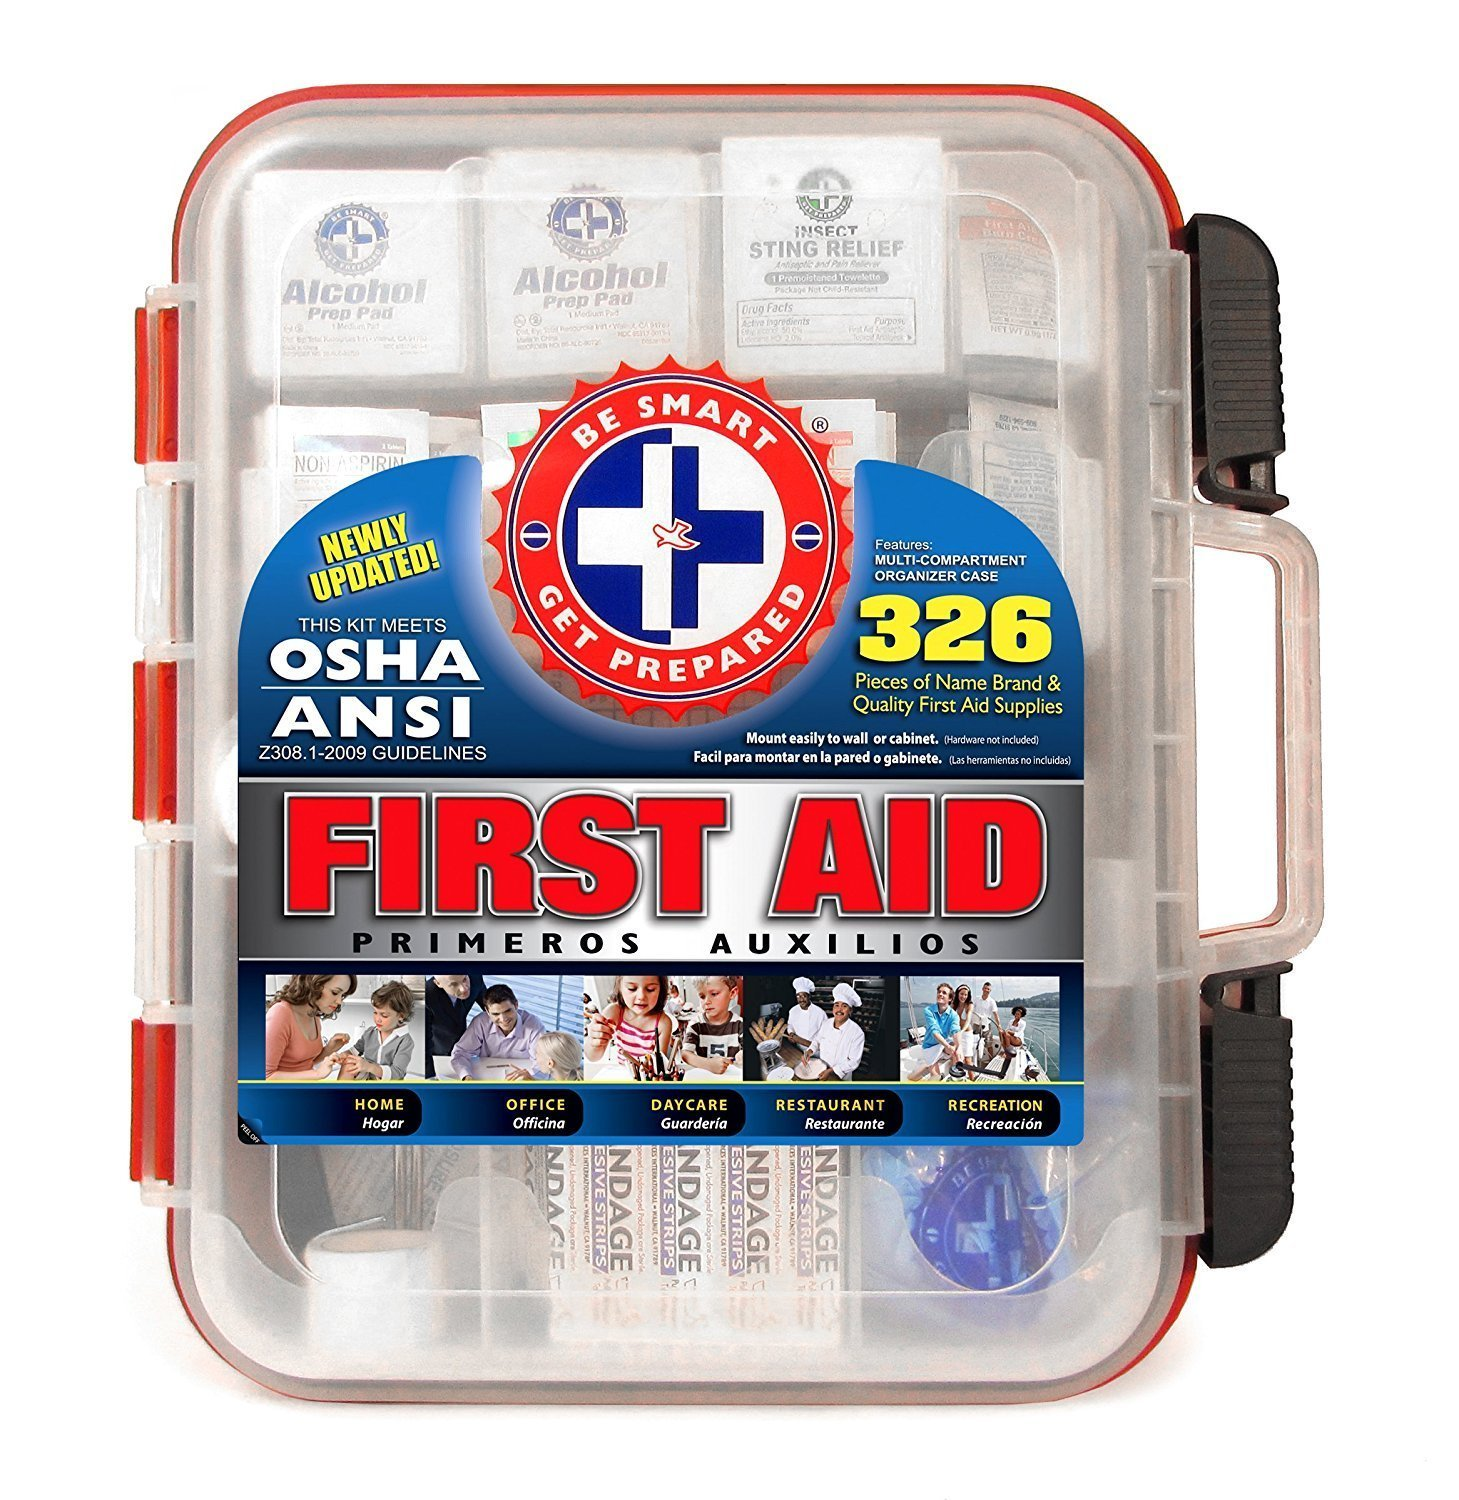 First Aid Kit Hard Red Case 326 Pieces Exceeds OSHA and ANSI Guidelines 100 People - Office, Home, Car, School, Emergency, Survival, Camping, Hunting, and Sports by Be Smart Get Prepared